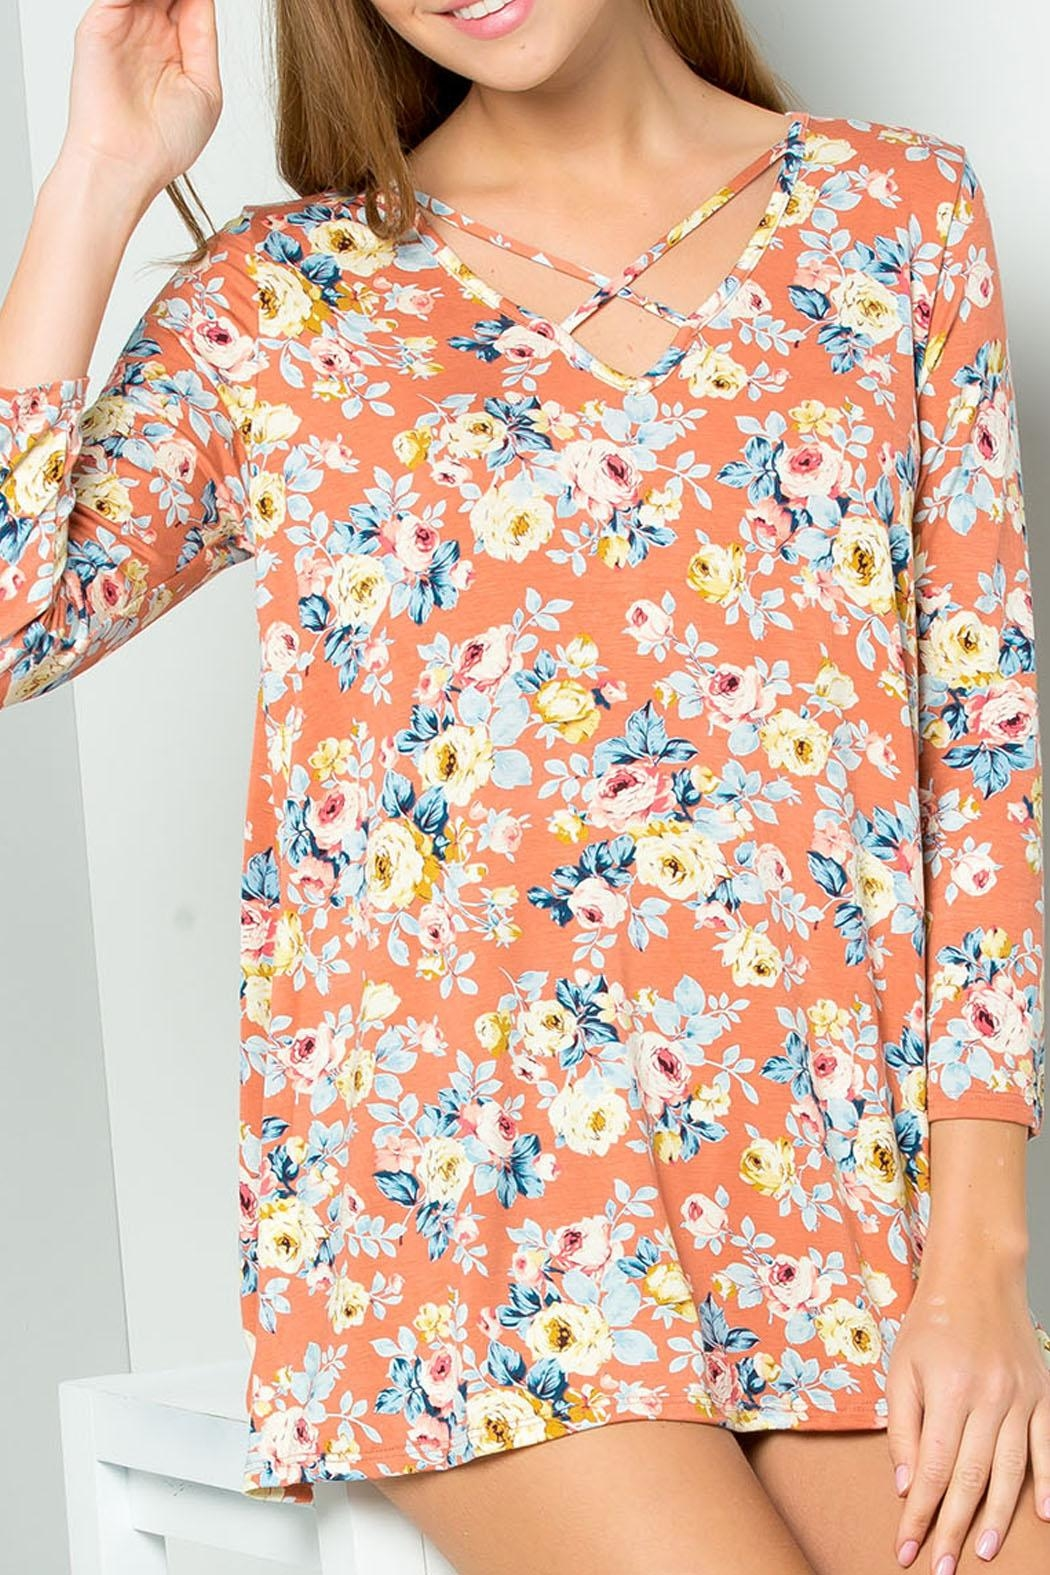 ee:some Peach Floral Top - Main Image